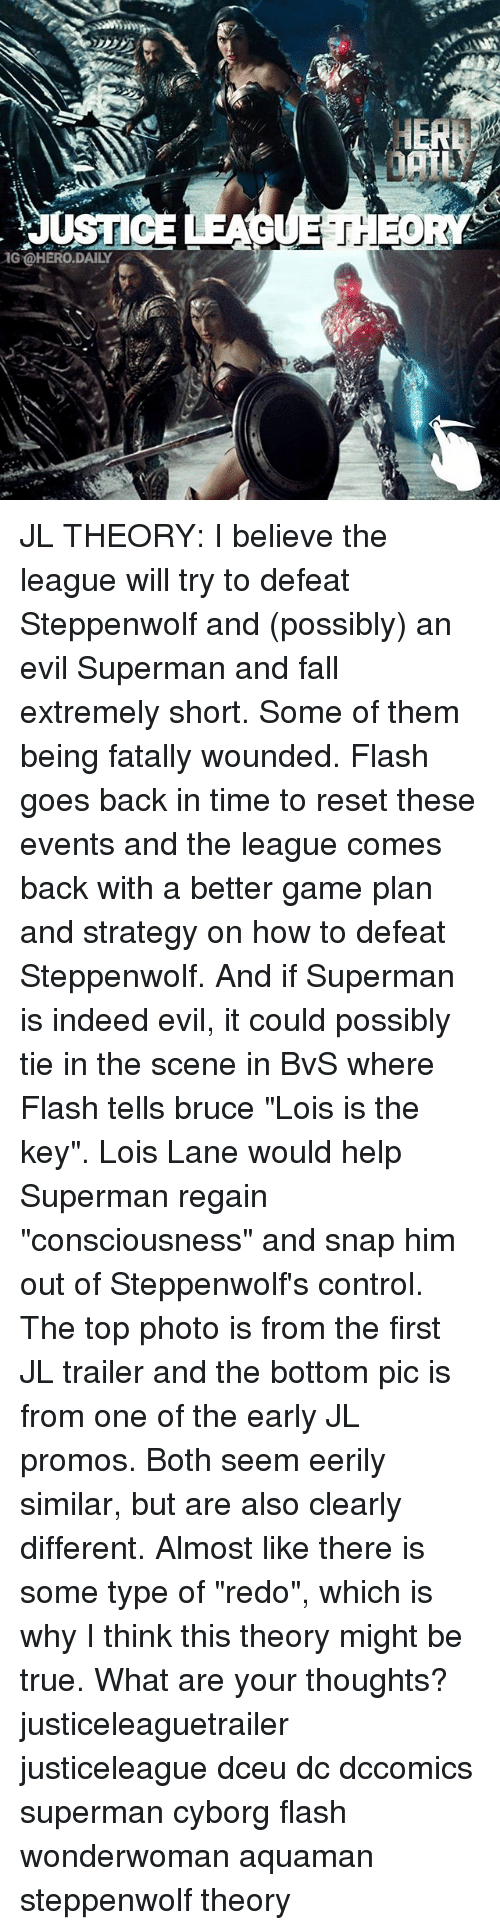 """Reseted: IG OHERO DAILY JL THEORY: I believe the league will try to defeat Steppenwolf and (possibly) an evil Superman and fall extremely short. Some of them being fatally wounded. Flash goes back in time to reset these events and the league comes back with a better game plan and strategy on how to defeat Steppenwolf. And if Superman is indeed evil, it could possibly tie in the scene in BvS where Flash tells bruce """"Lois is the key"""". Lois Lane would help Superman regain """"consciousness"""" and snap him out of Steppenwolf's control. The top photo is from the first JL trailer and the bottom pic is from one of the early JL promos. Both seem eerily similar, but are also clearly different. Almost like there is some type of """"redo"""", which is why I think this theory might be true. What are your thoughts? justiceleaguetrailer justiceleague dceu dc dccomics superman cyborg flash wonderwoman aquaman steppenwolf theory"""